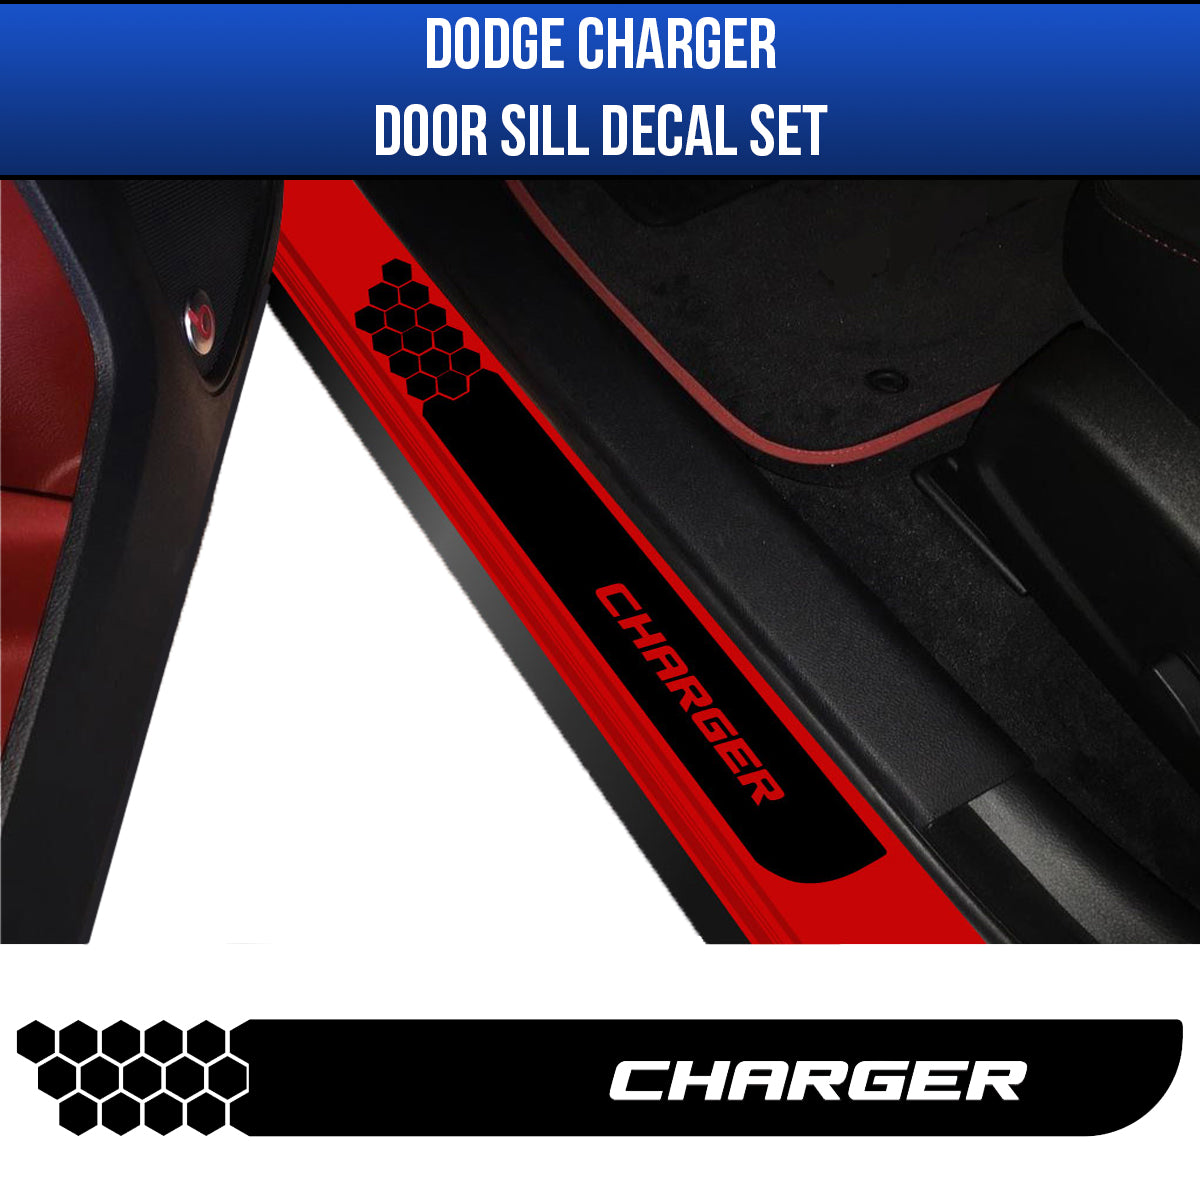 2006-2019 Dodge Charger Door Sill Guard Decal Kit (black